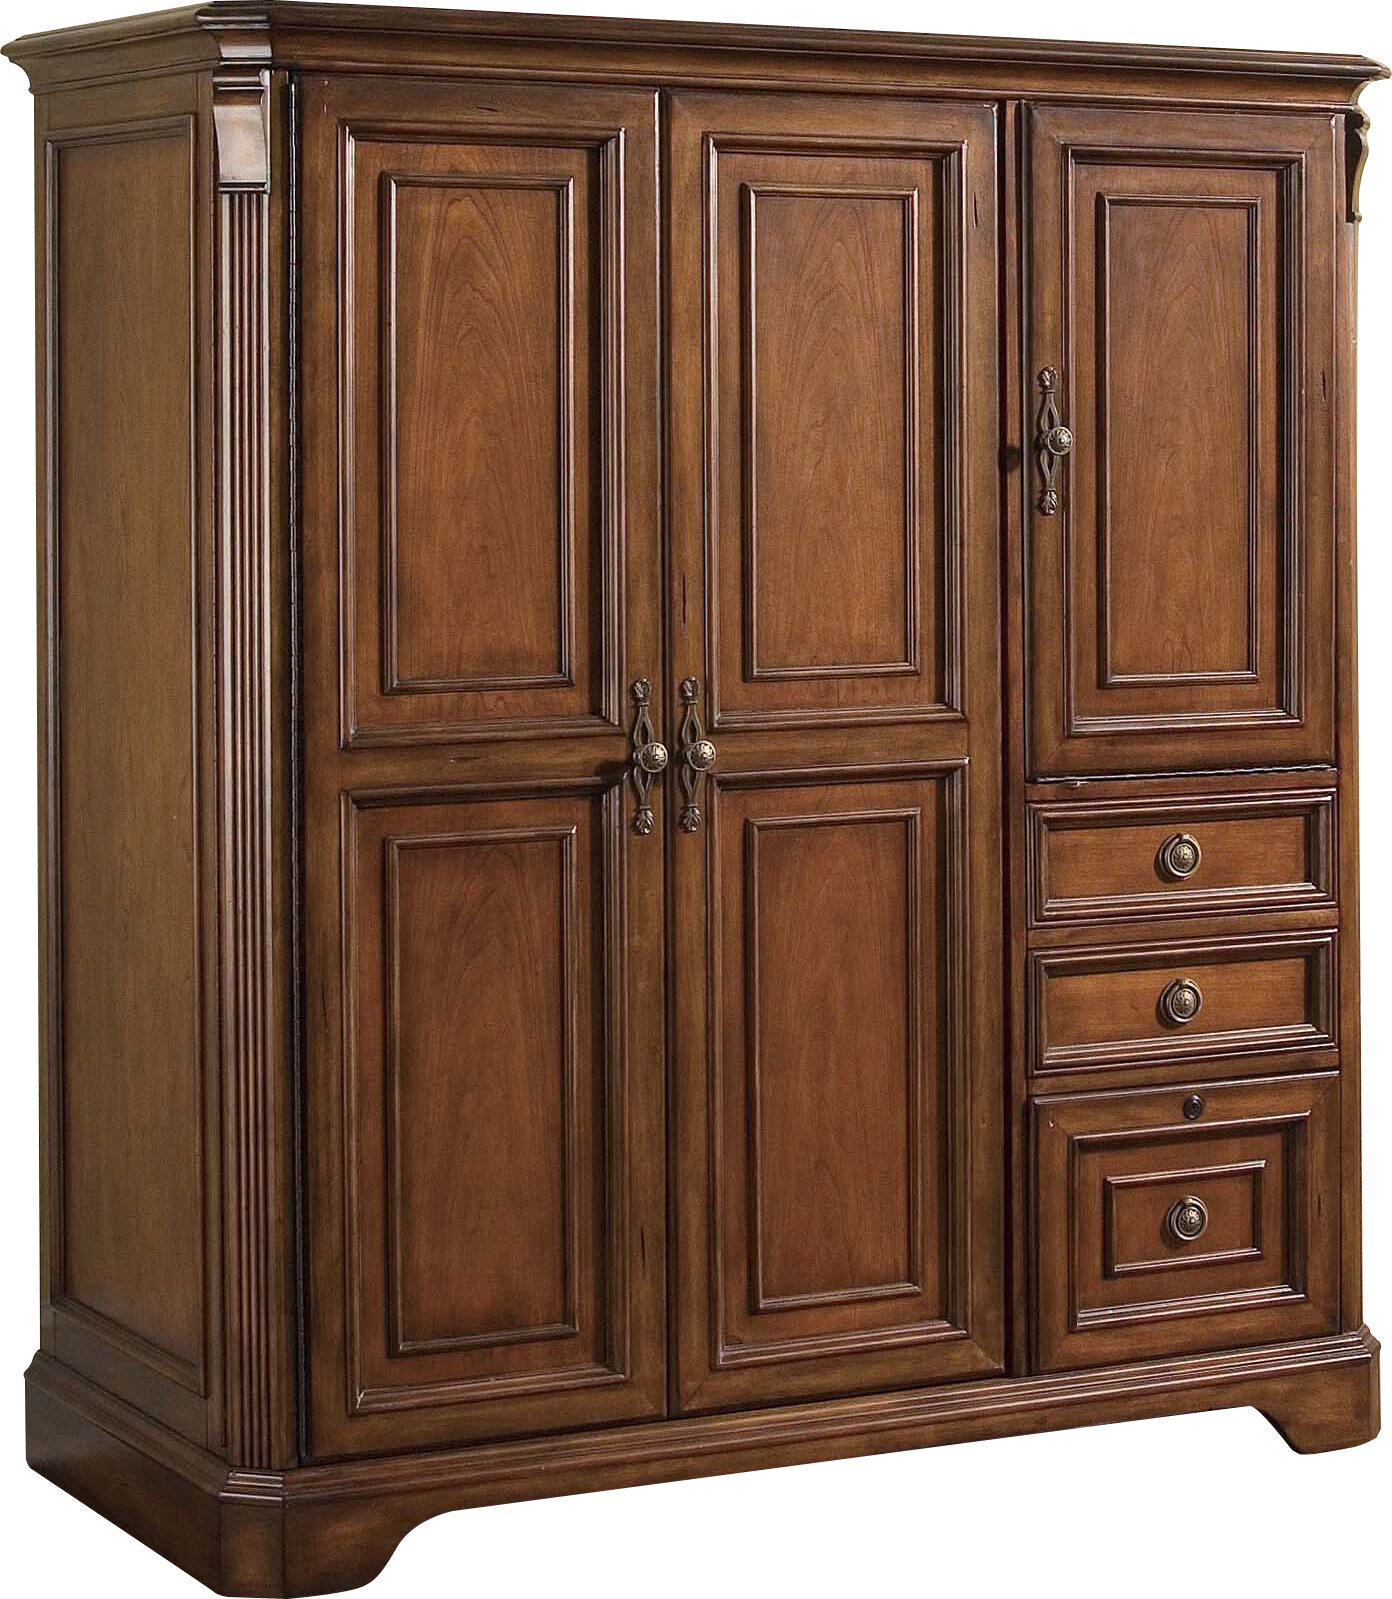 Hooker Furniture Brookhave Armoire Desk Reviews